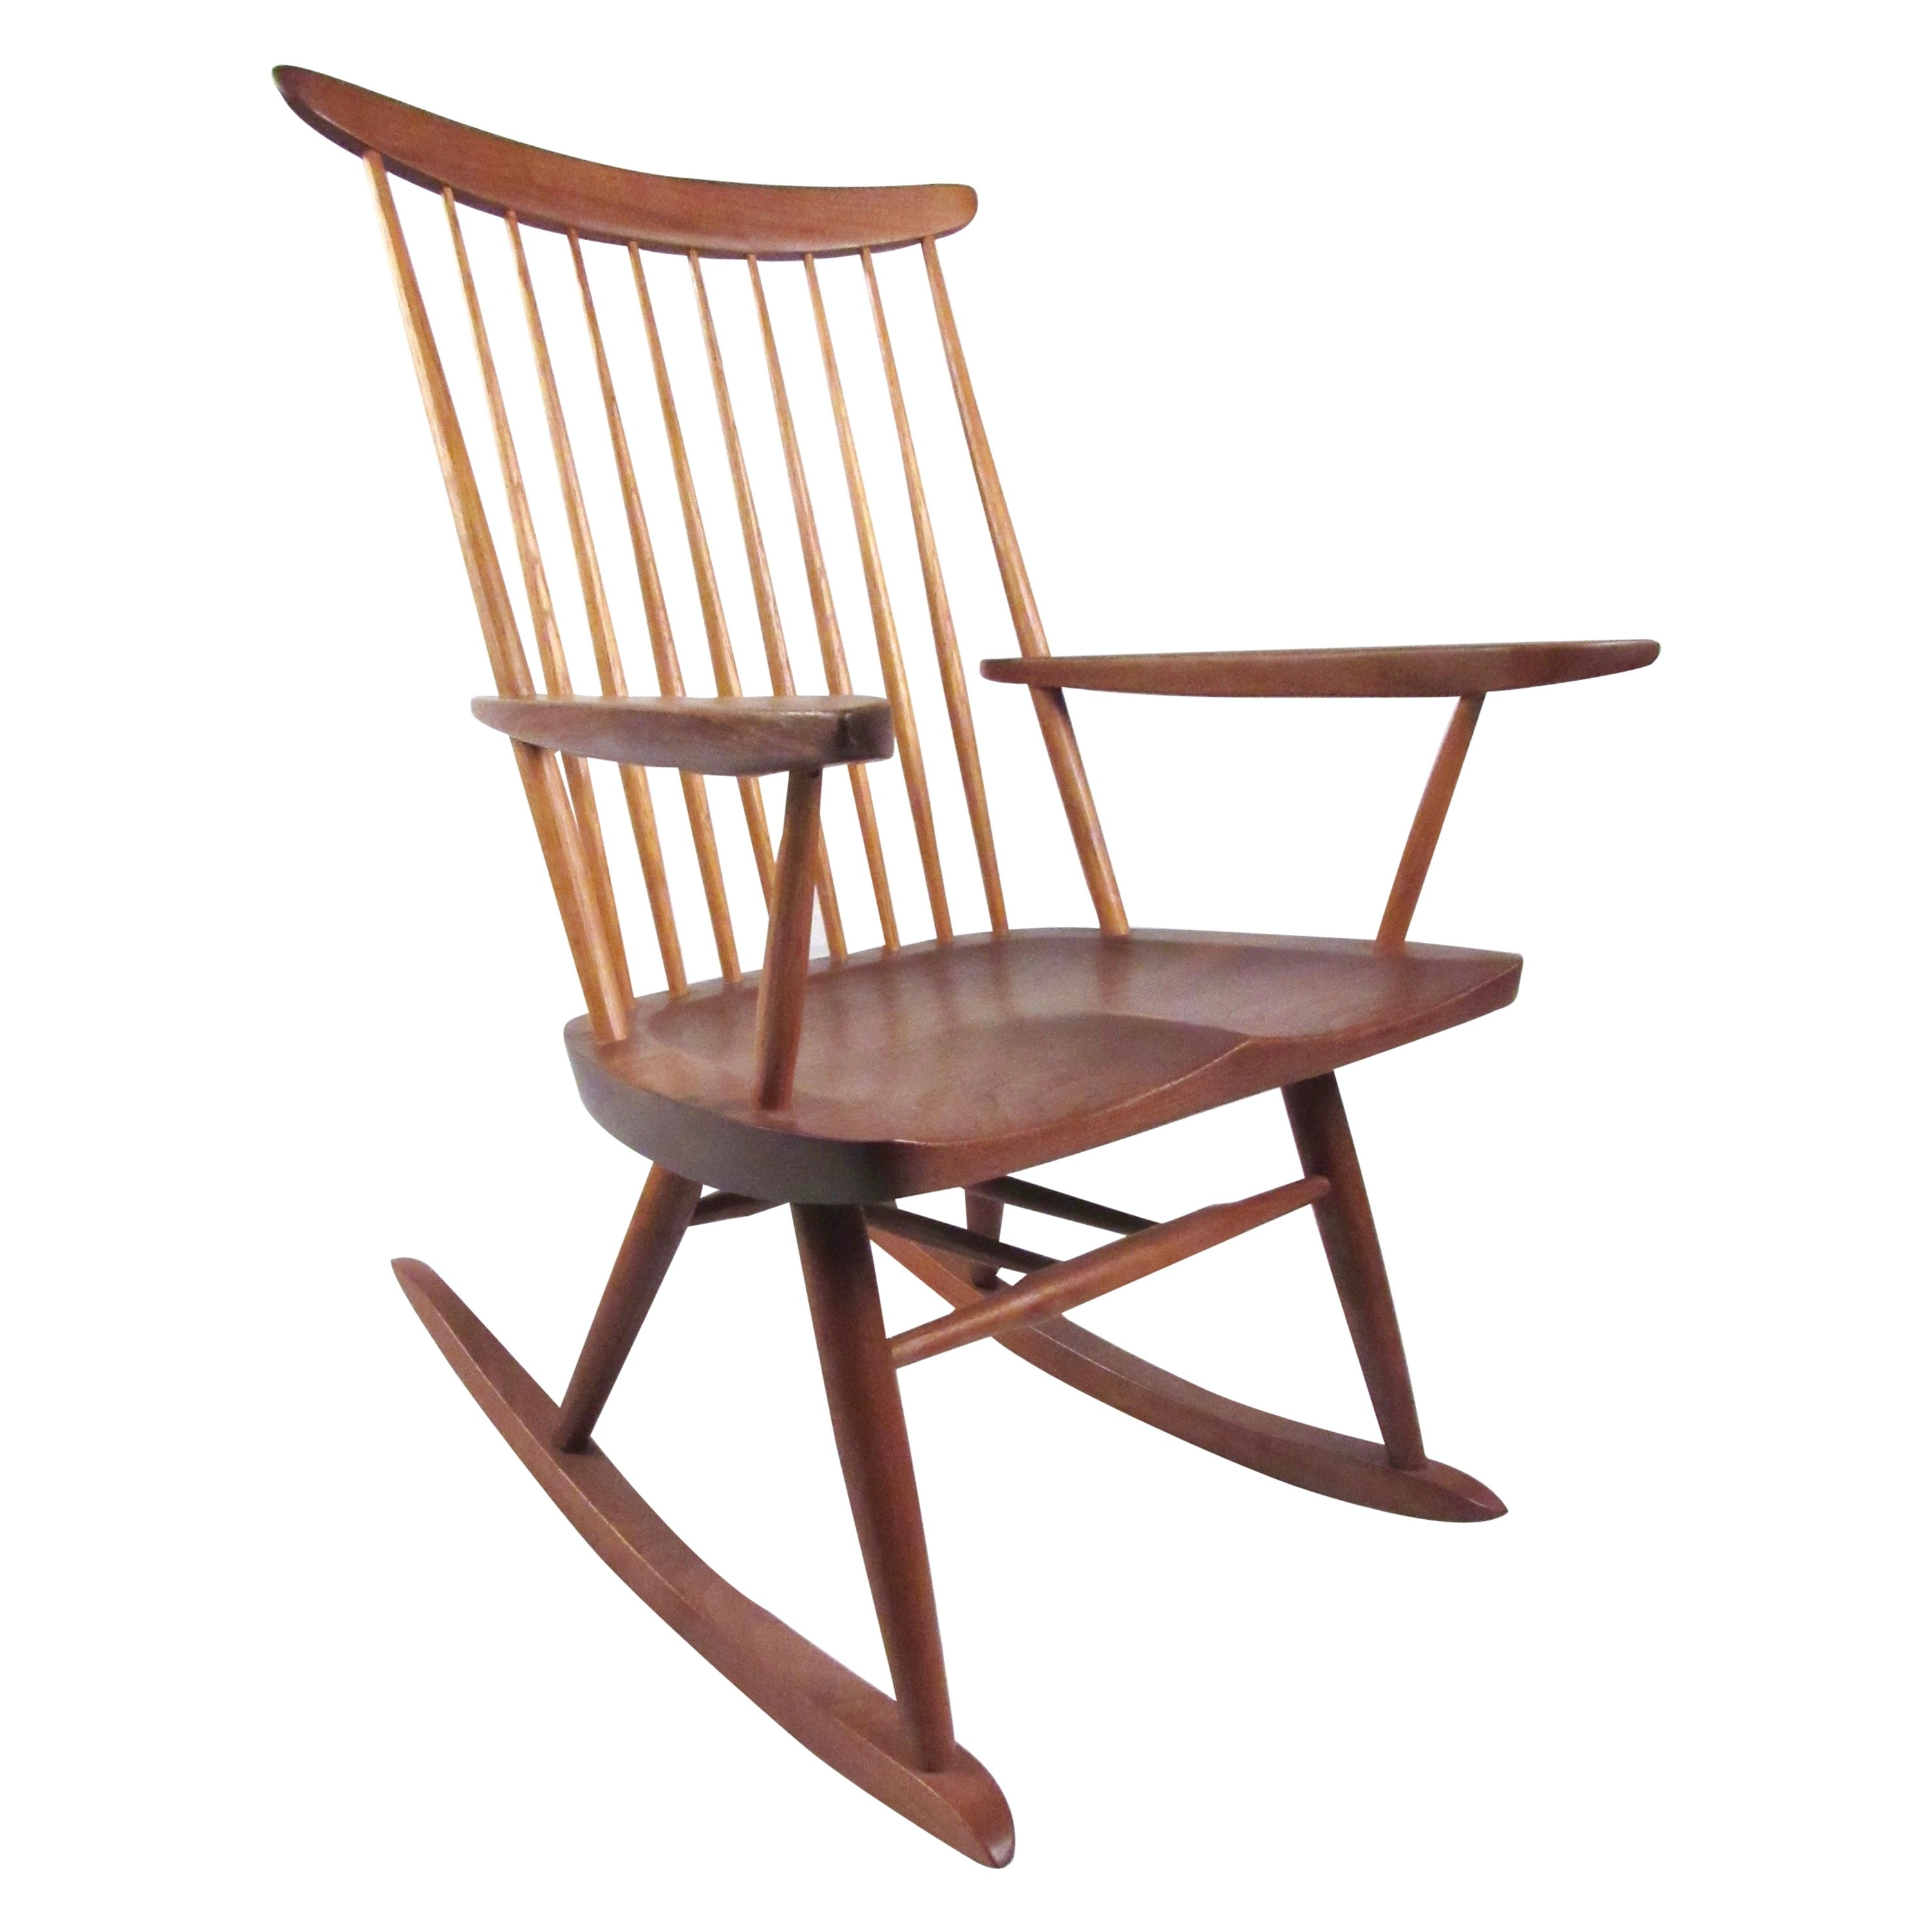 Rocking Chair With Free Edge Armgeorge Nakashima For Sale At 1Stdibs Within Fashionable Zen Rocking Chairs (View 10 of 15)